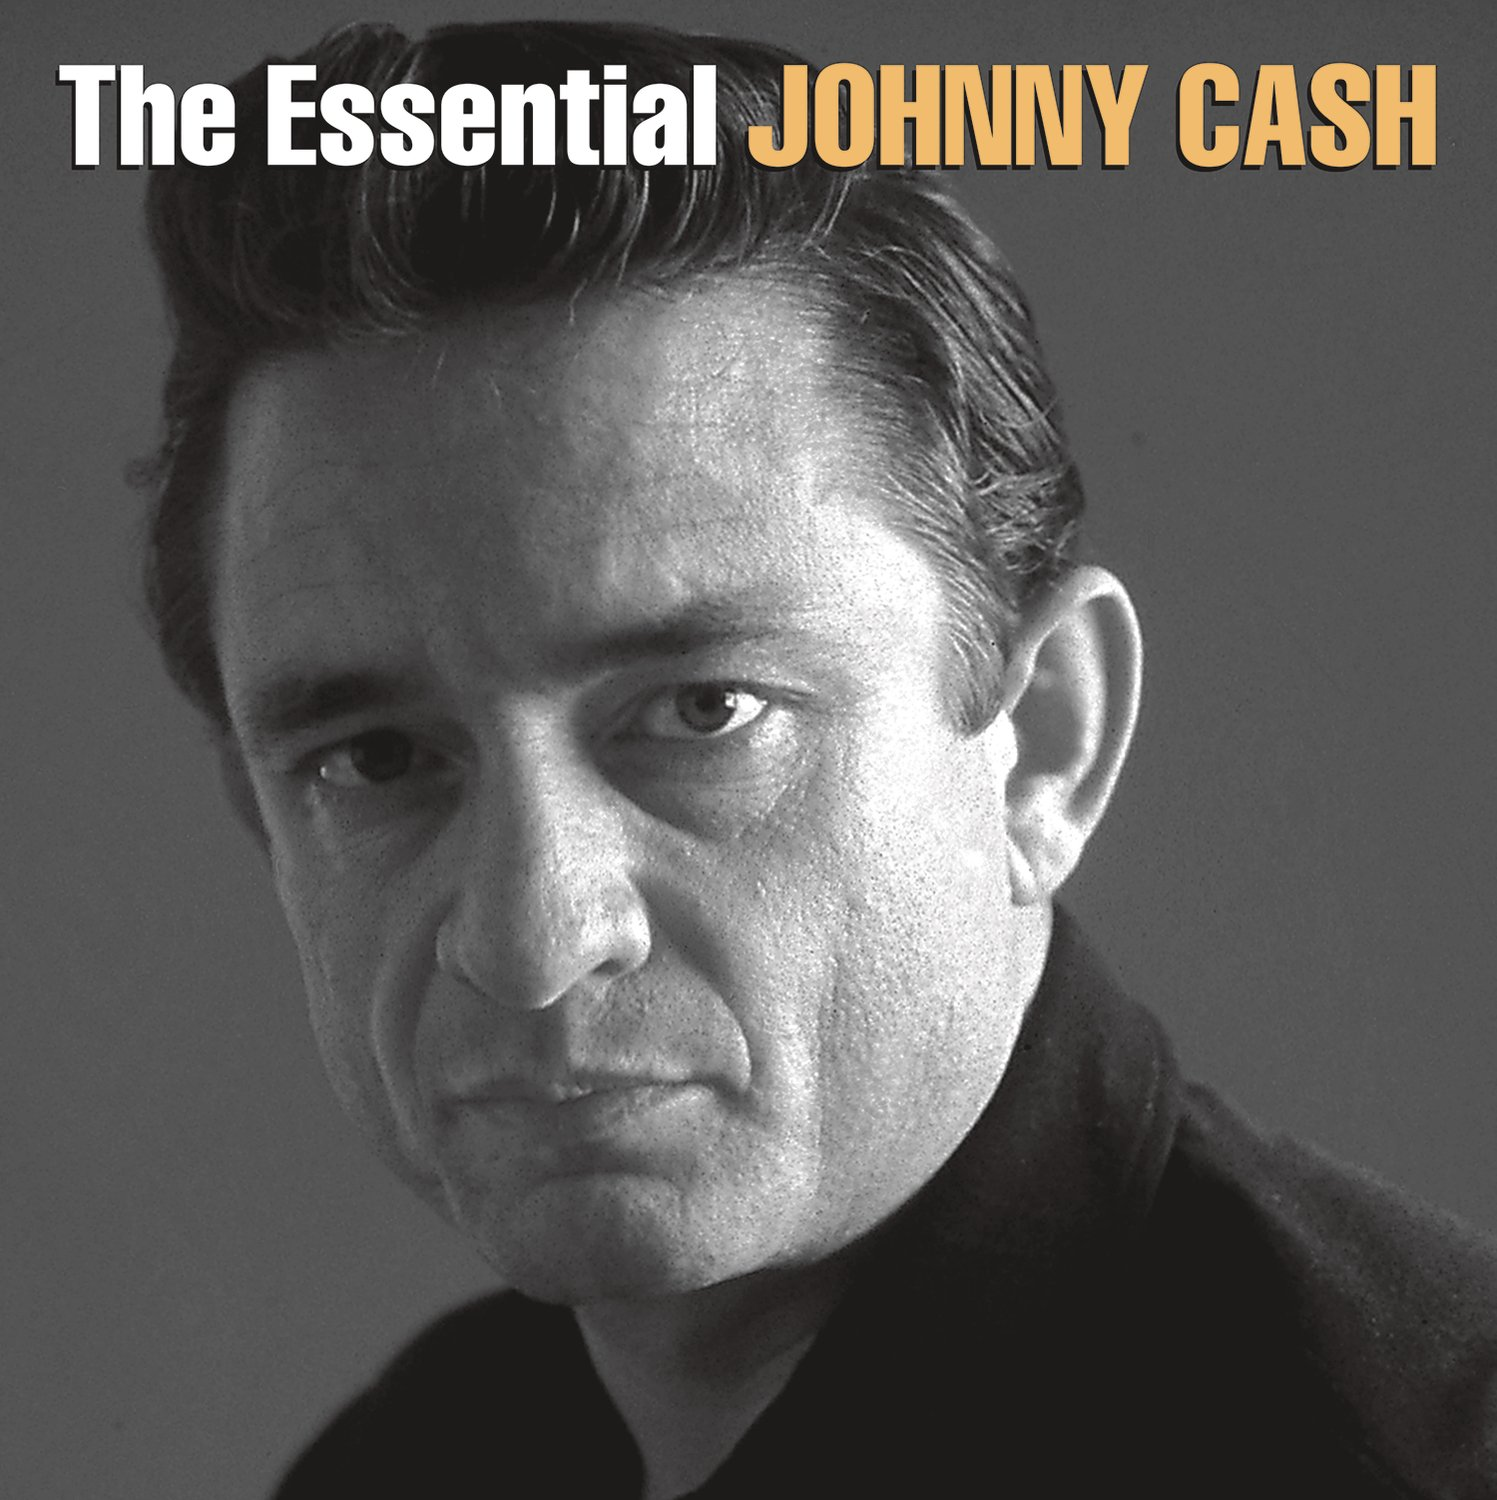 The Essential Johnny Cash by Legacy